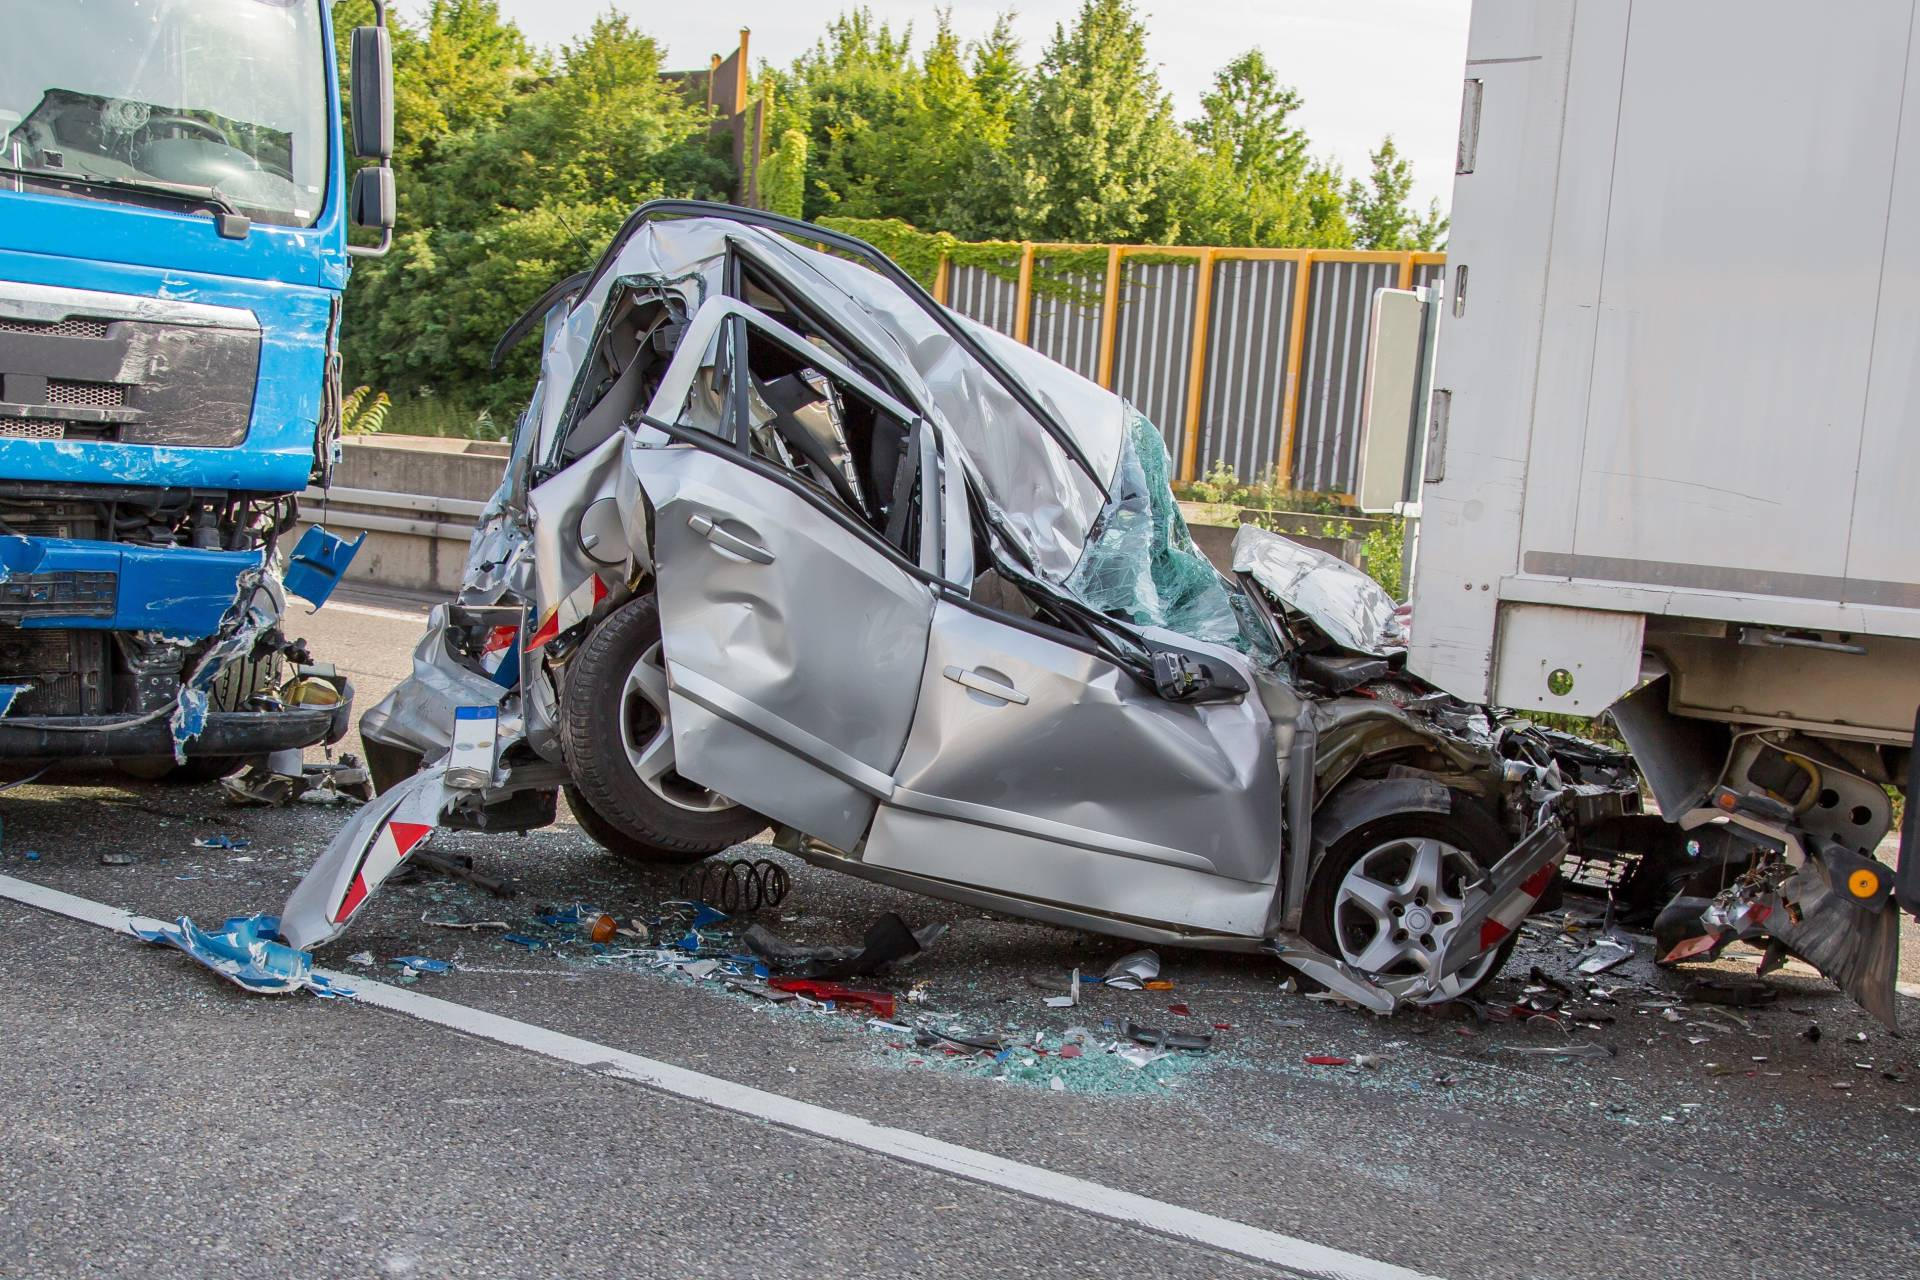 Injured in a truck accident caused by a negligent truck driver? Contact the Angell Law Firm today!